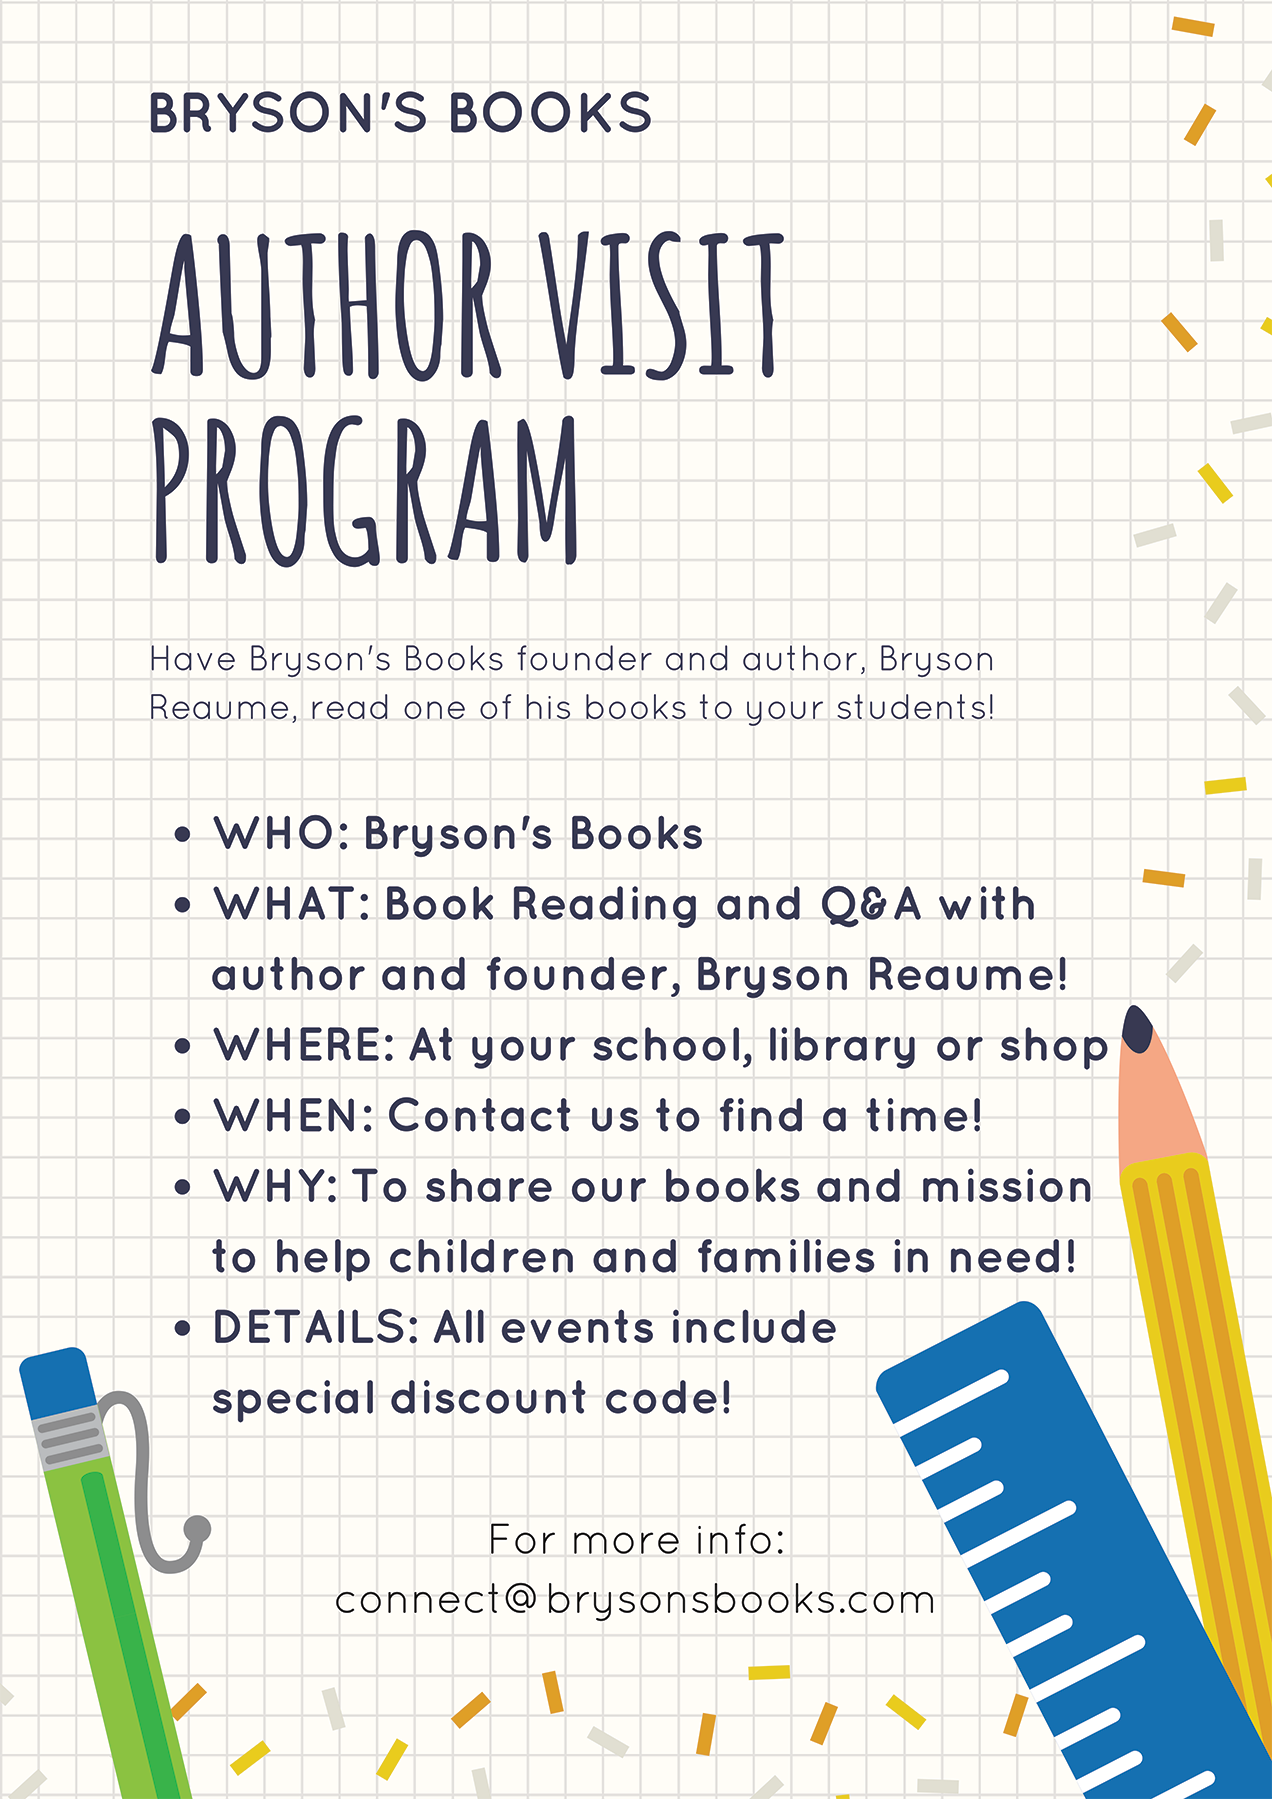 Author Visit Program